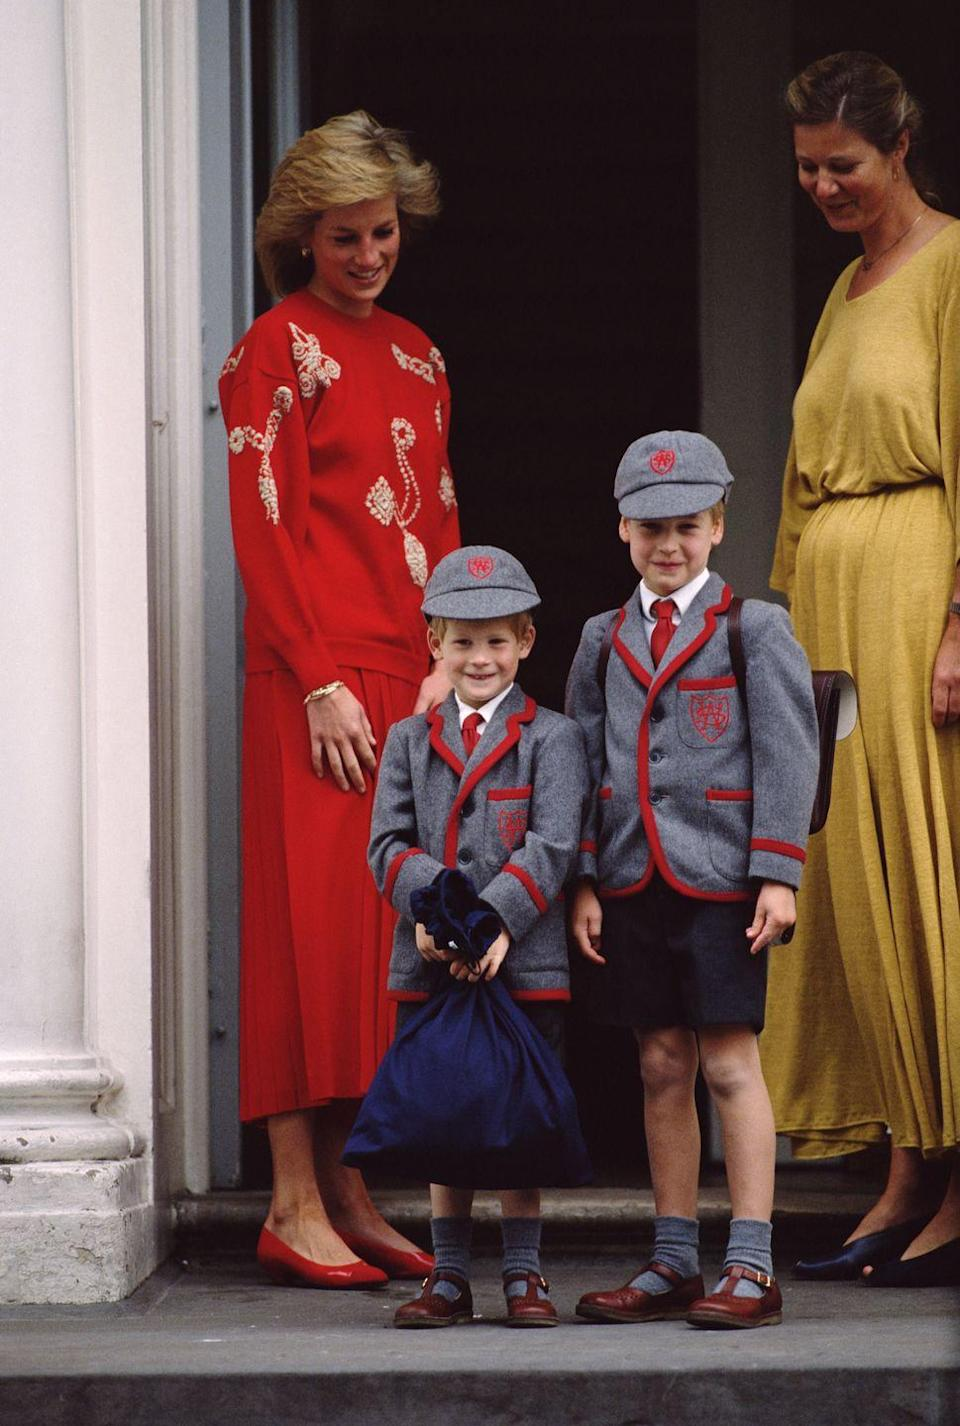 <p>Prince William joins his younger brother for his first day of school. The two give the press a smile as they enter and, of course, are accompanied by their mother Princess Diana. </p>